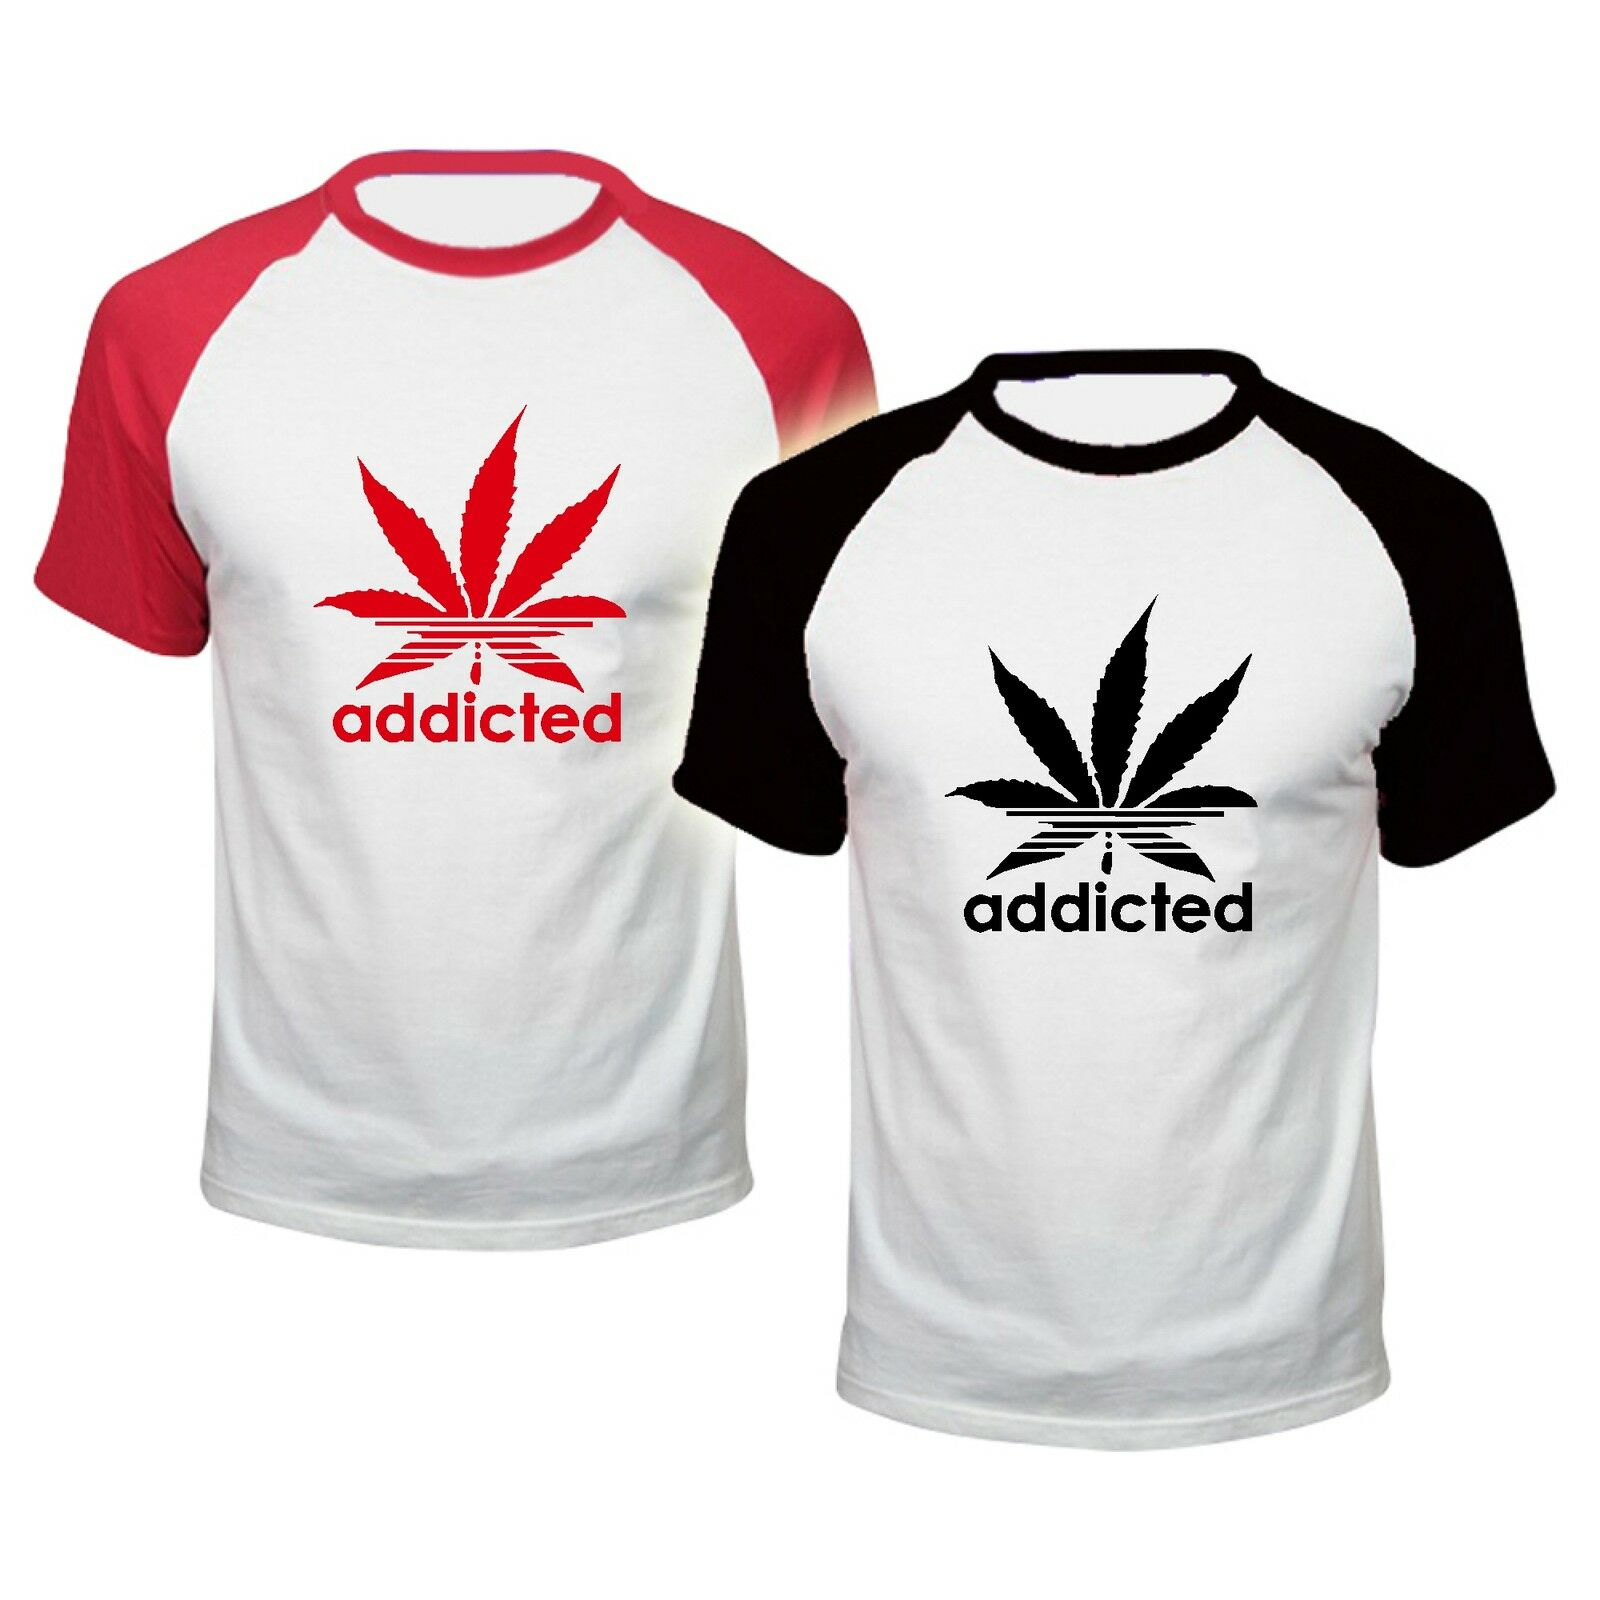 ADDICTED baseball xx T SHIRT addict CANNABIS WIZ KHALIFA PROSTo MARIJUANA 1